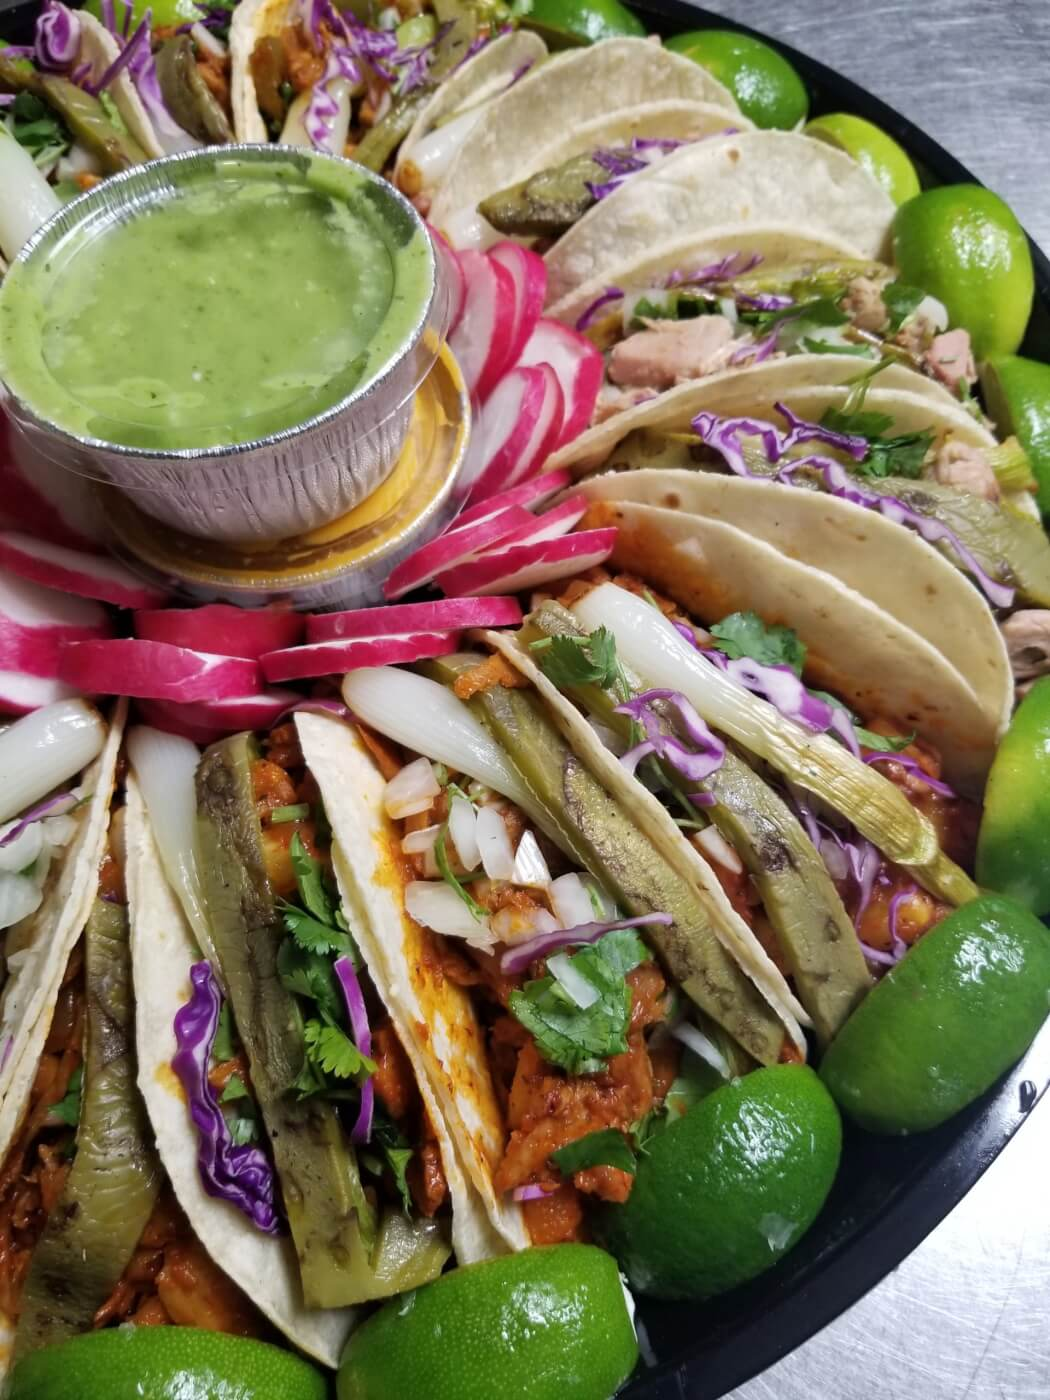 tacos on a plate with a green sauce